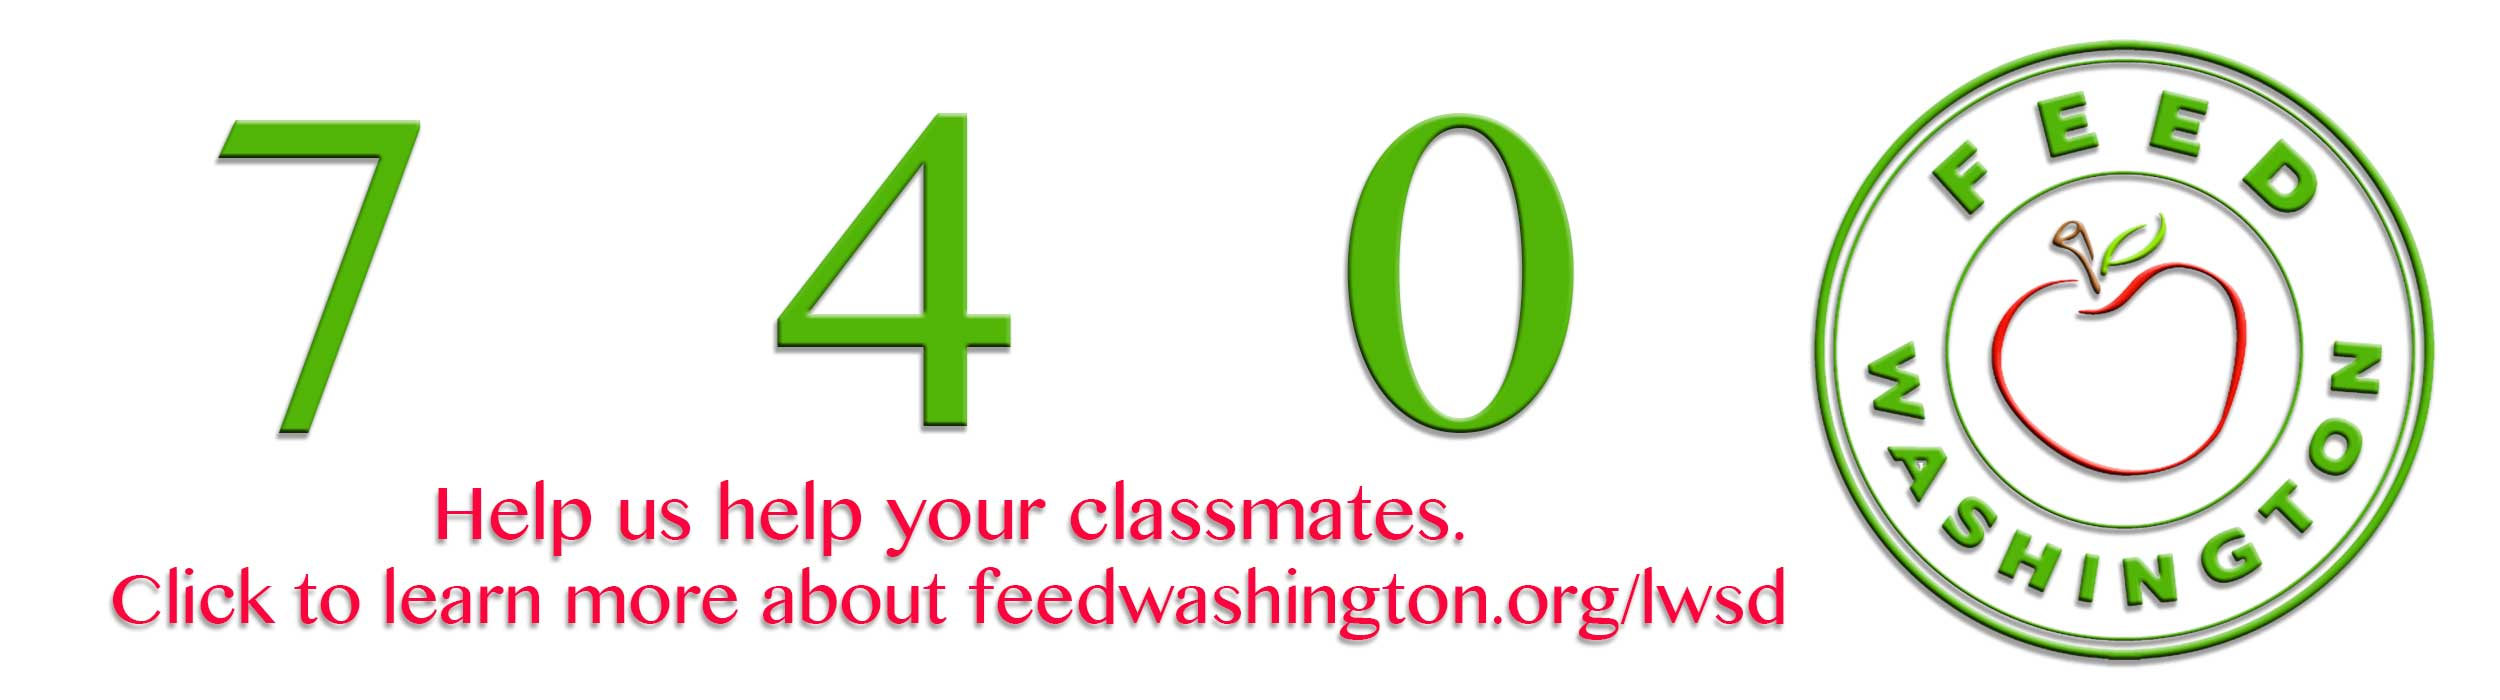 feed washington lwsd